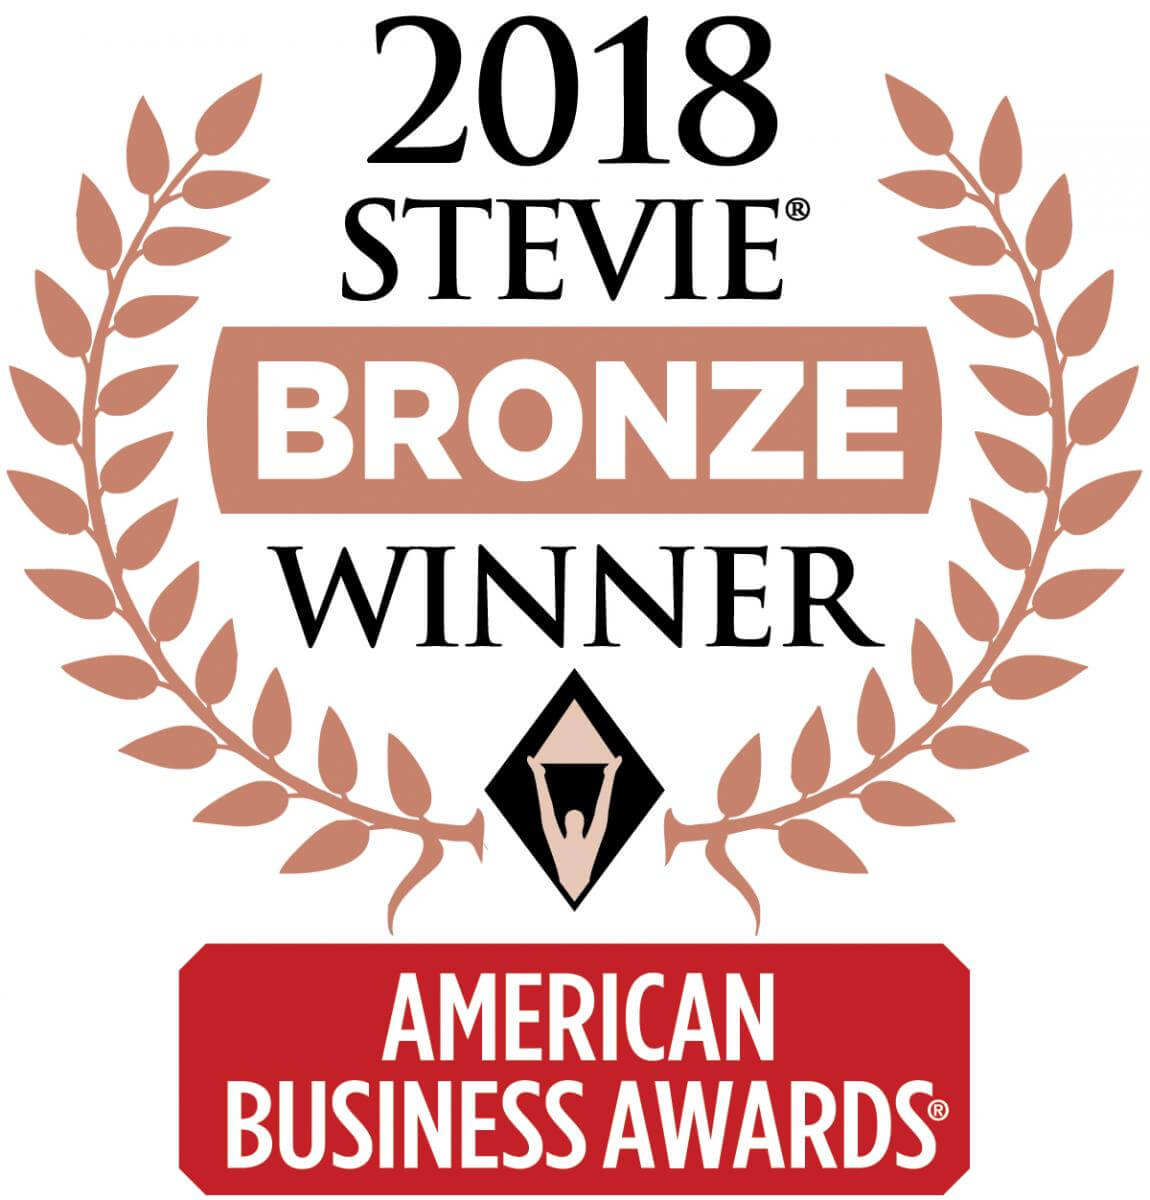 2018 Stevie Award Bronze Winner Logo